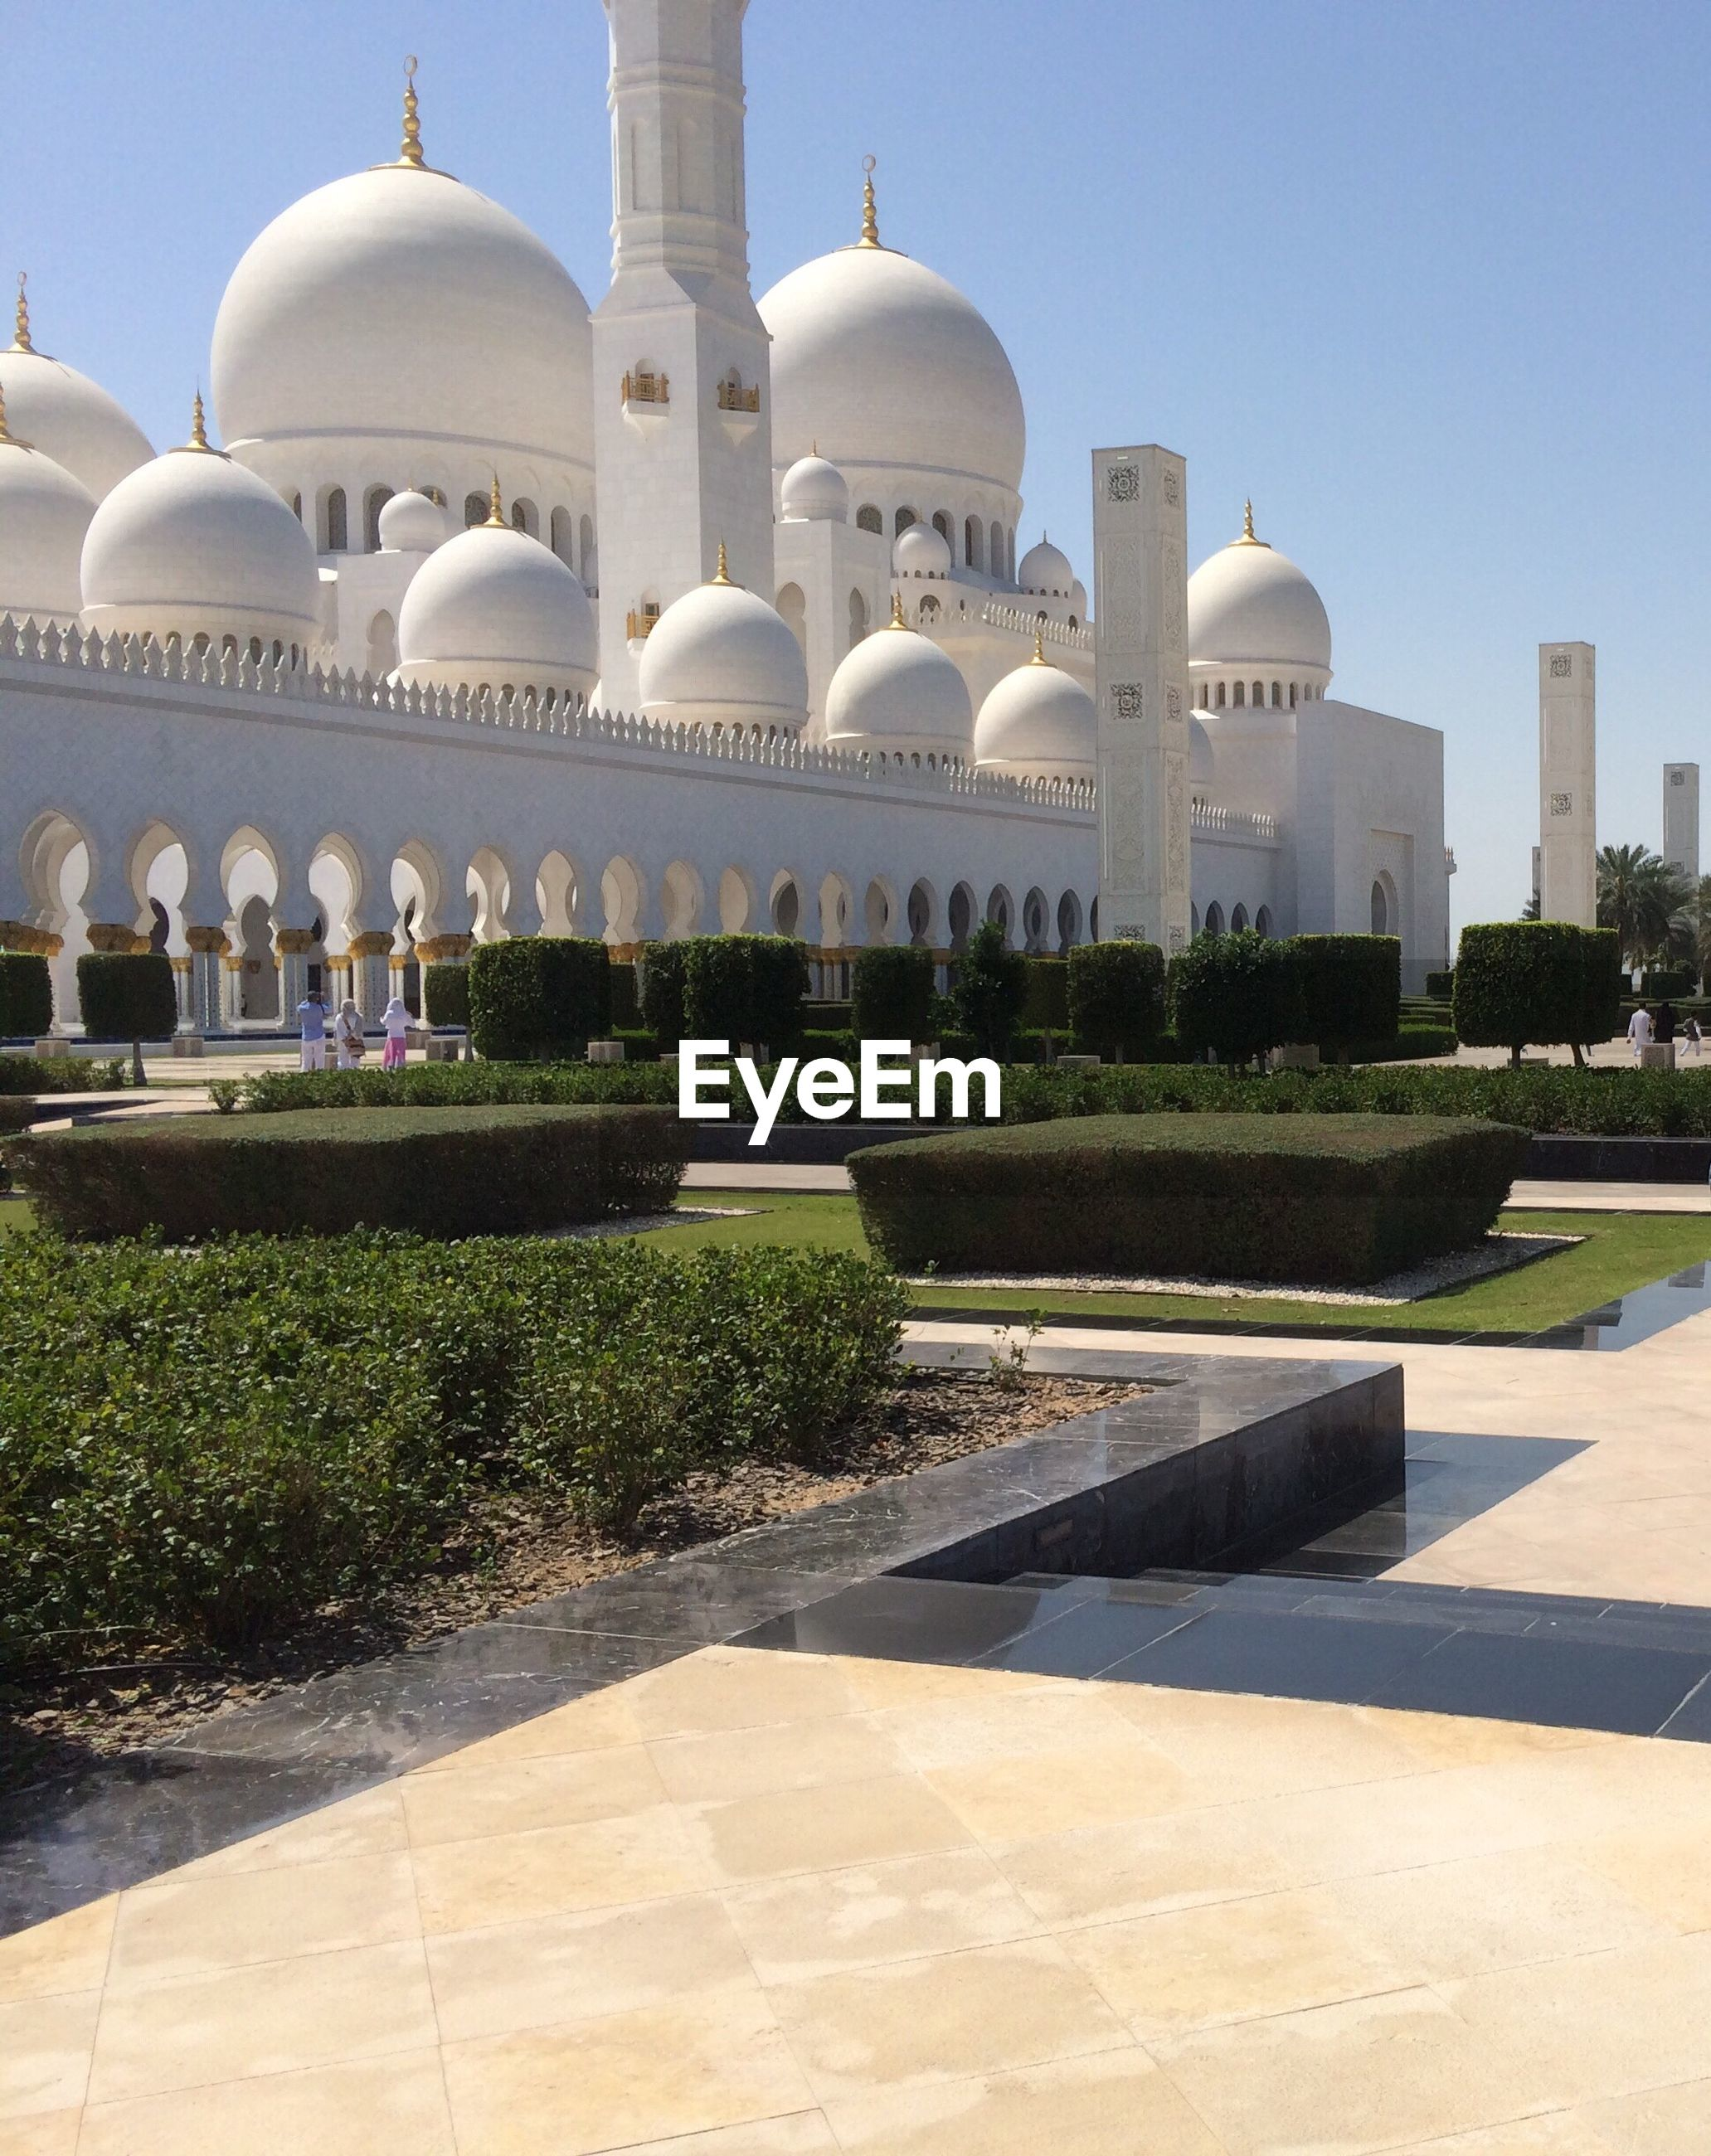 architecture, built structure, building exterior, dome, clear sky, famous place, travel destinations, mosque, islam, white color, place of worship, city, religion, tourism, travel, grass, day, church, international landmark